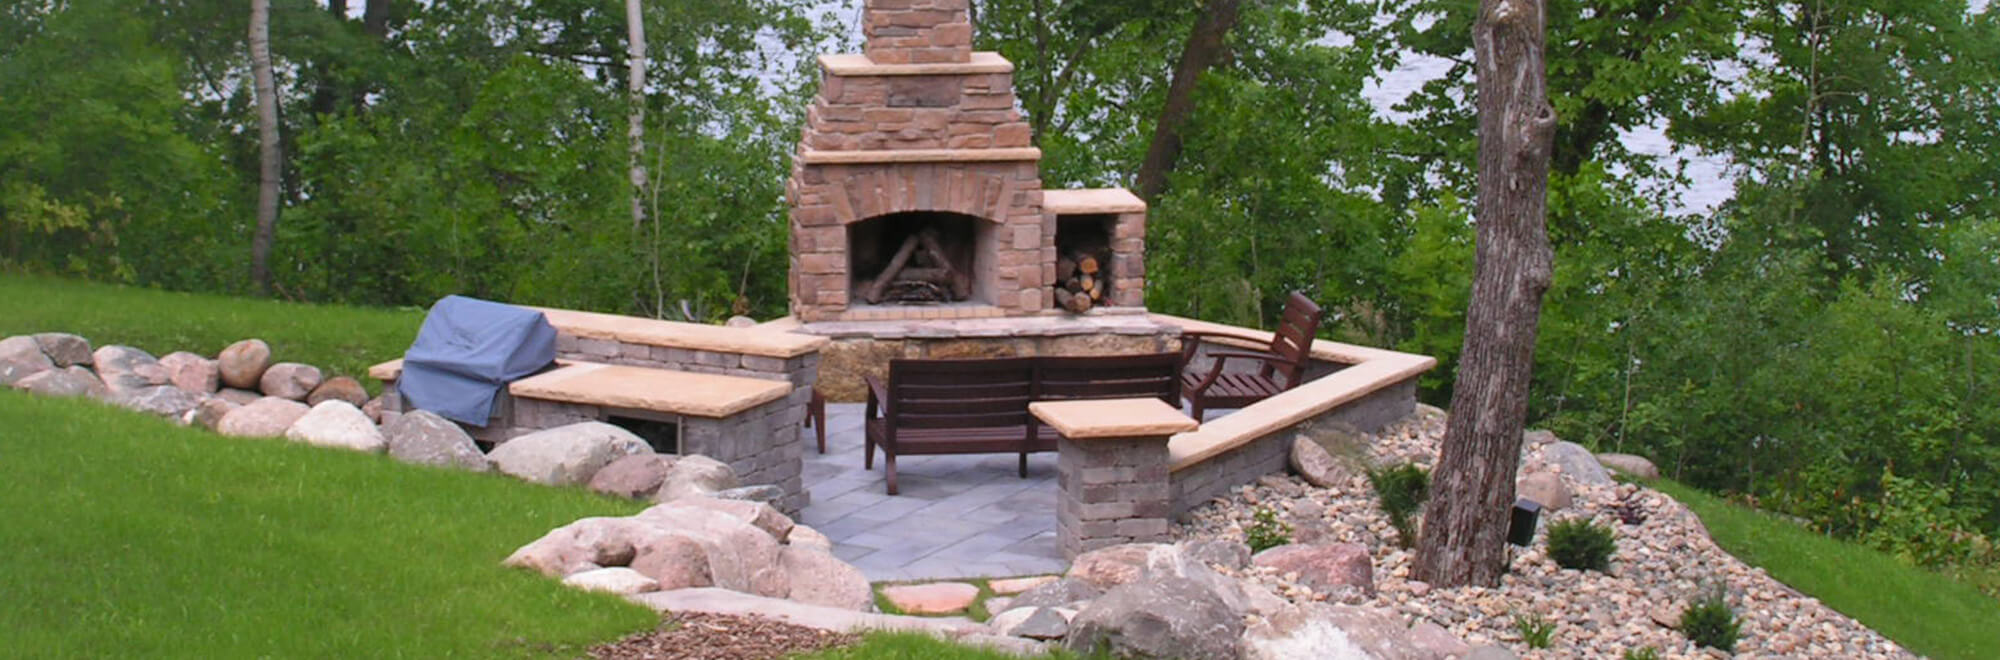 Outdoor living space in a backyard complete with paver patio, block seating wall, outdoor kitchen, and stone fireplace